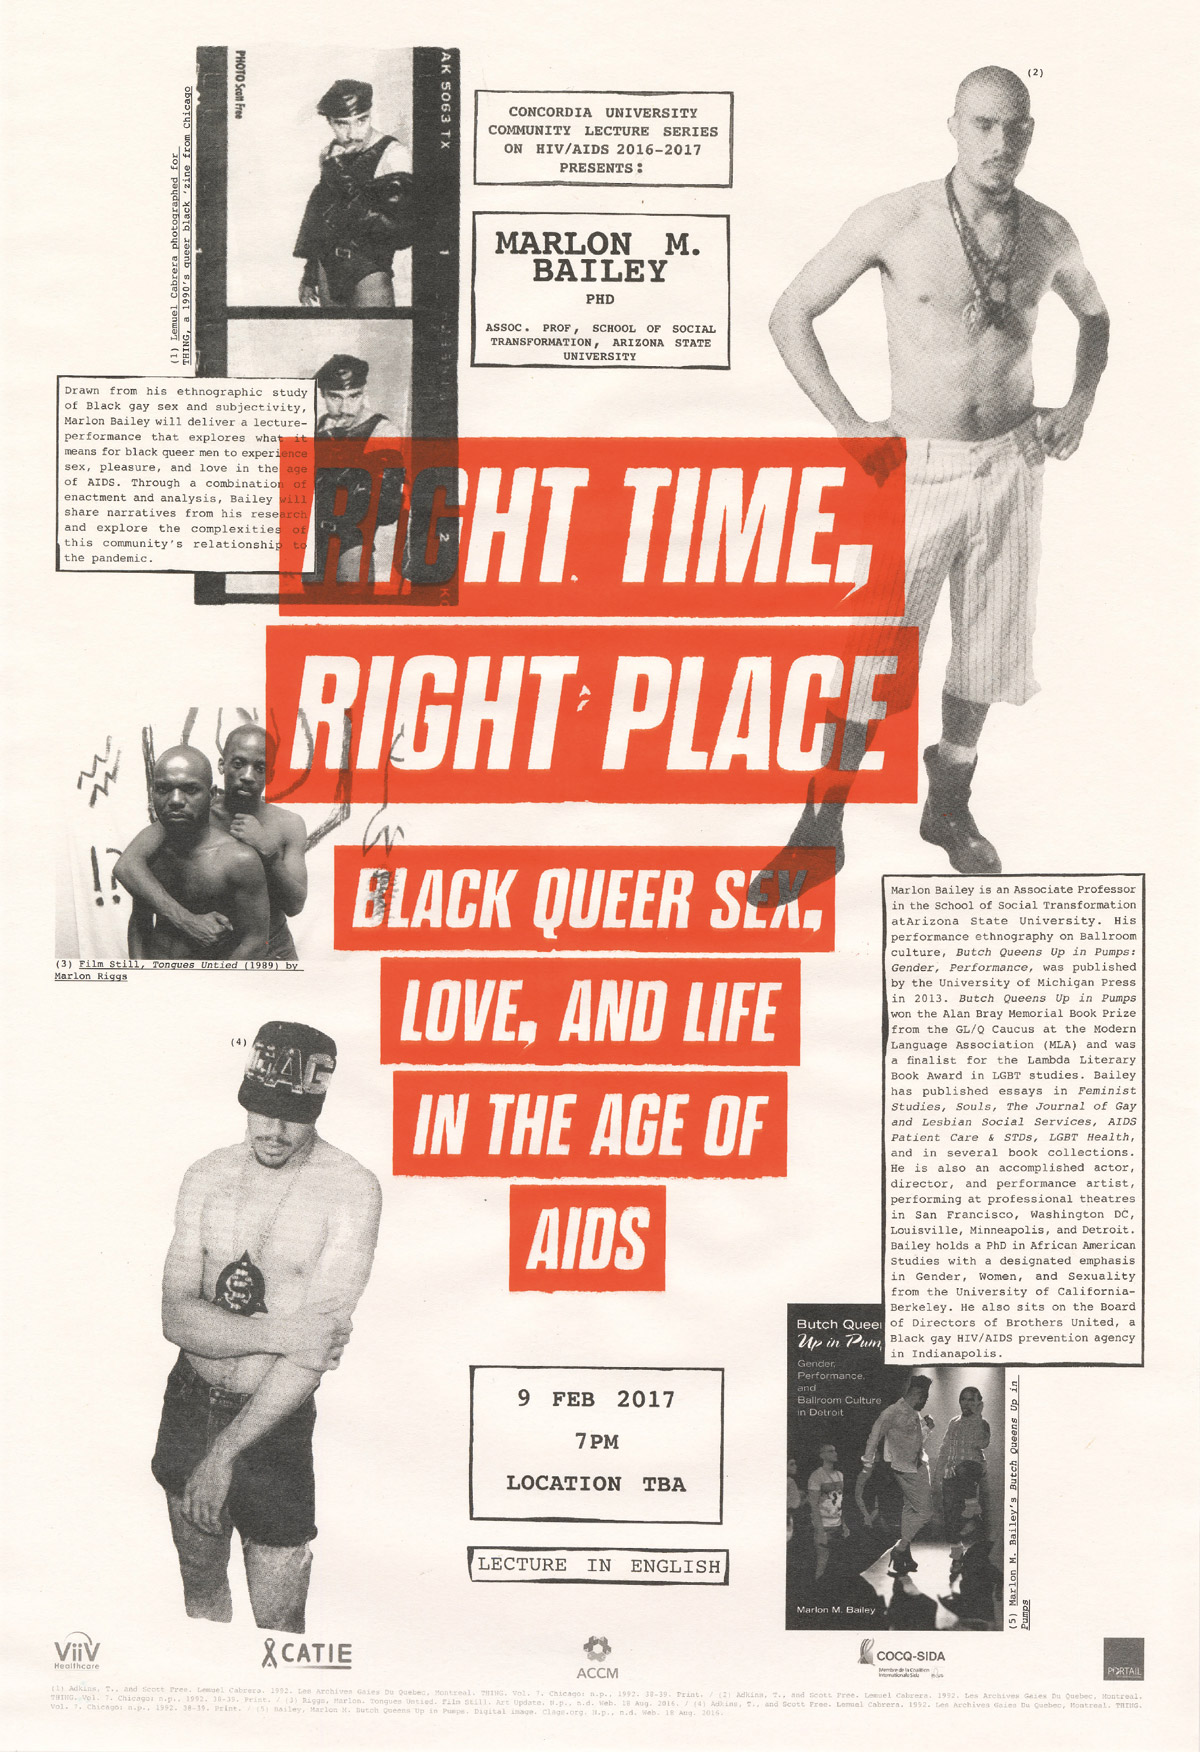 Lucas Larochelle for the Concordia Community HIV/AIDS Lecture Series (2016-2018), Right Time, Right Place, 2017. Digital Poster. Courtesy of the Concordia Community HIV/AIDS Lecture Series.